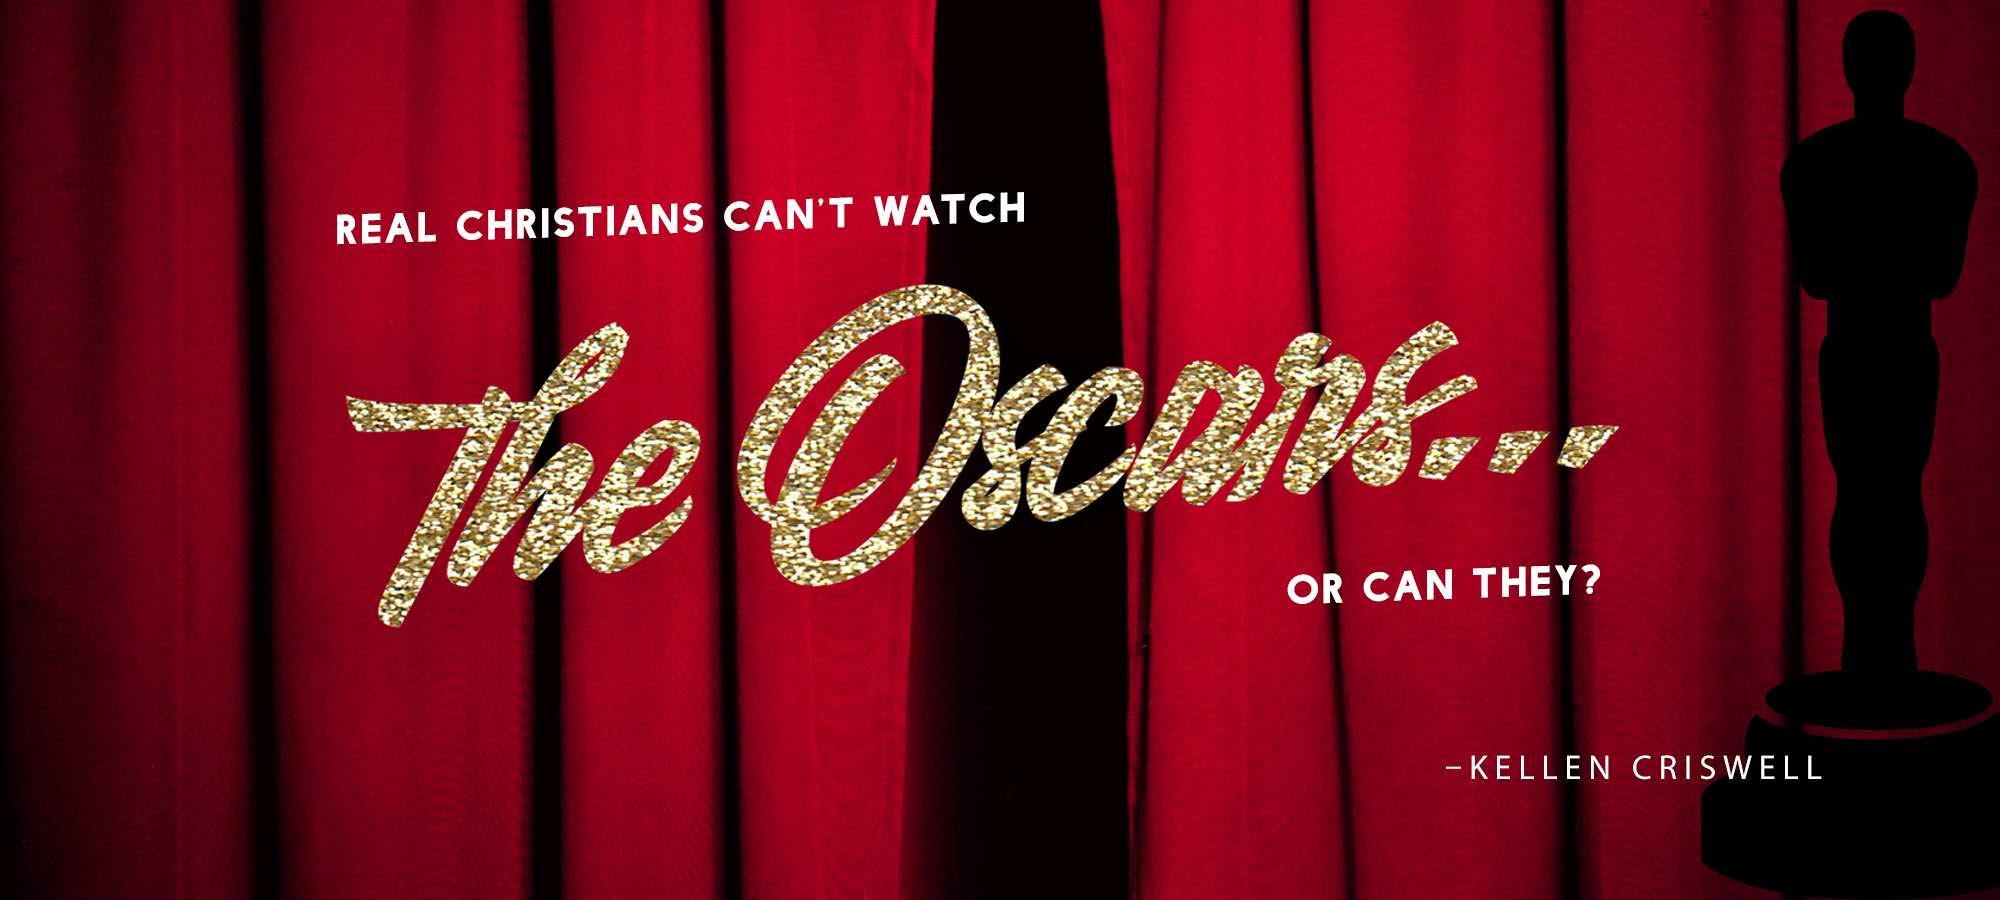 Real Christians Can't Watch the Oscars...or Can They?